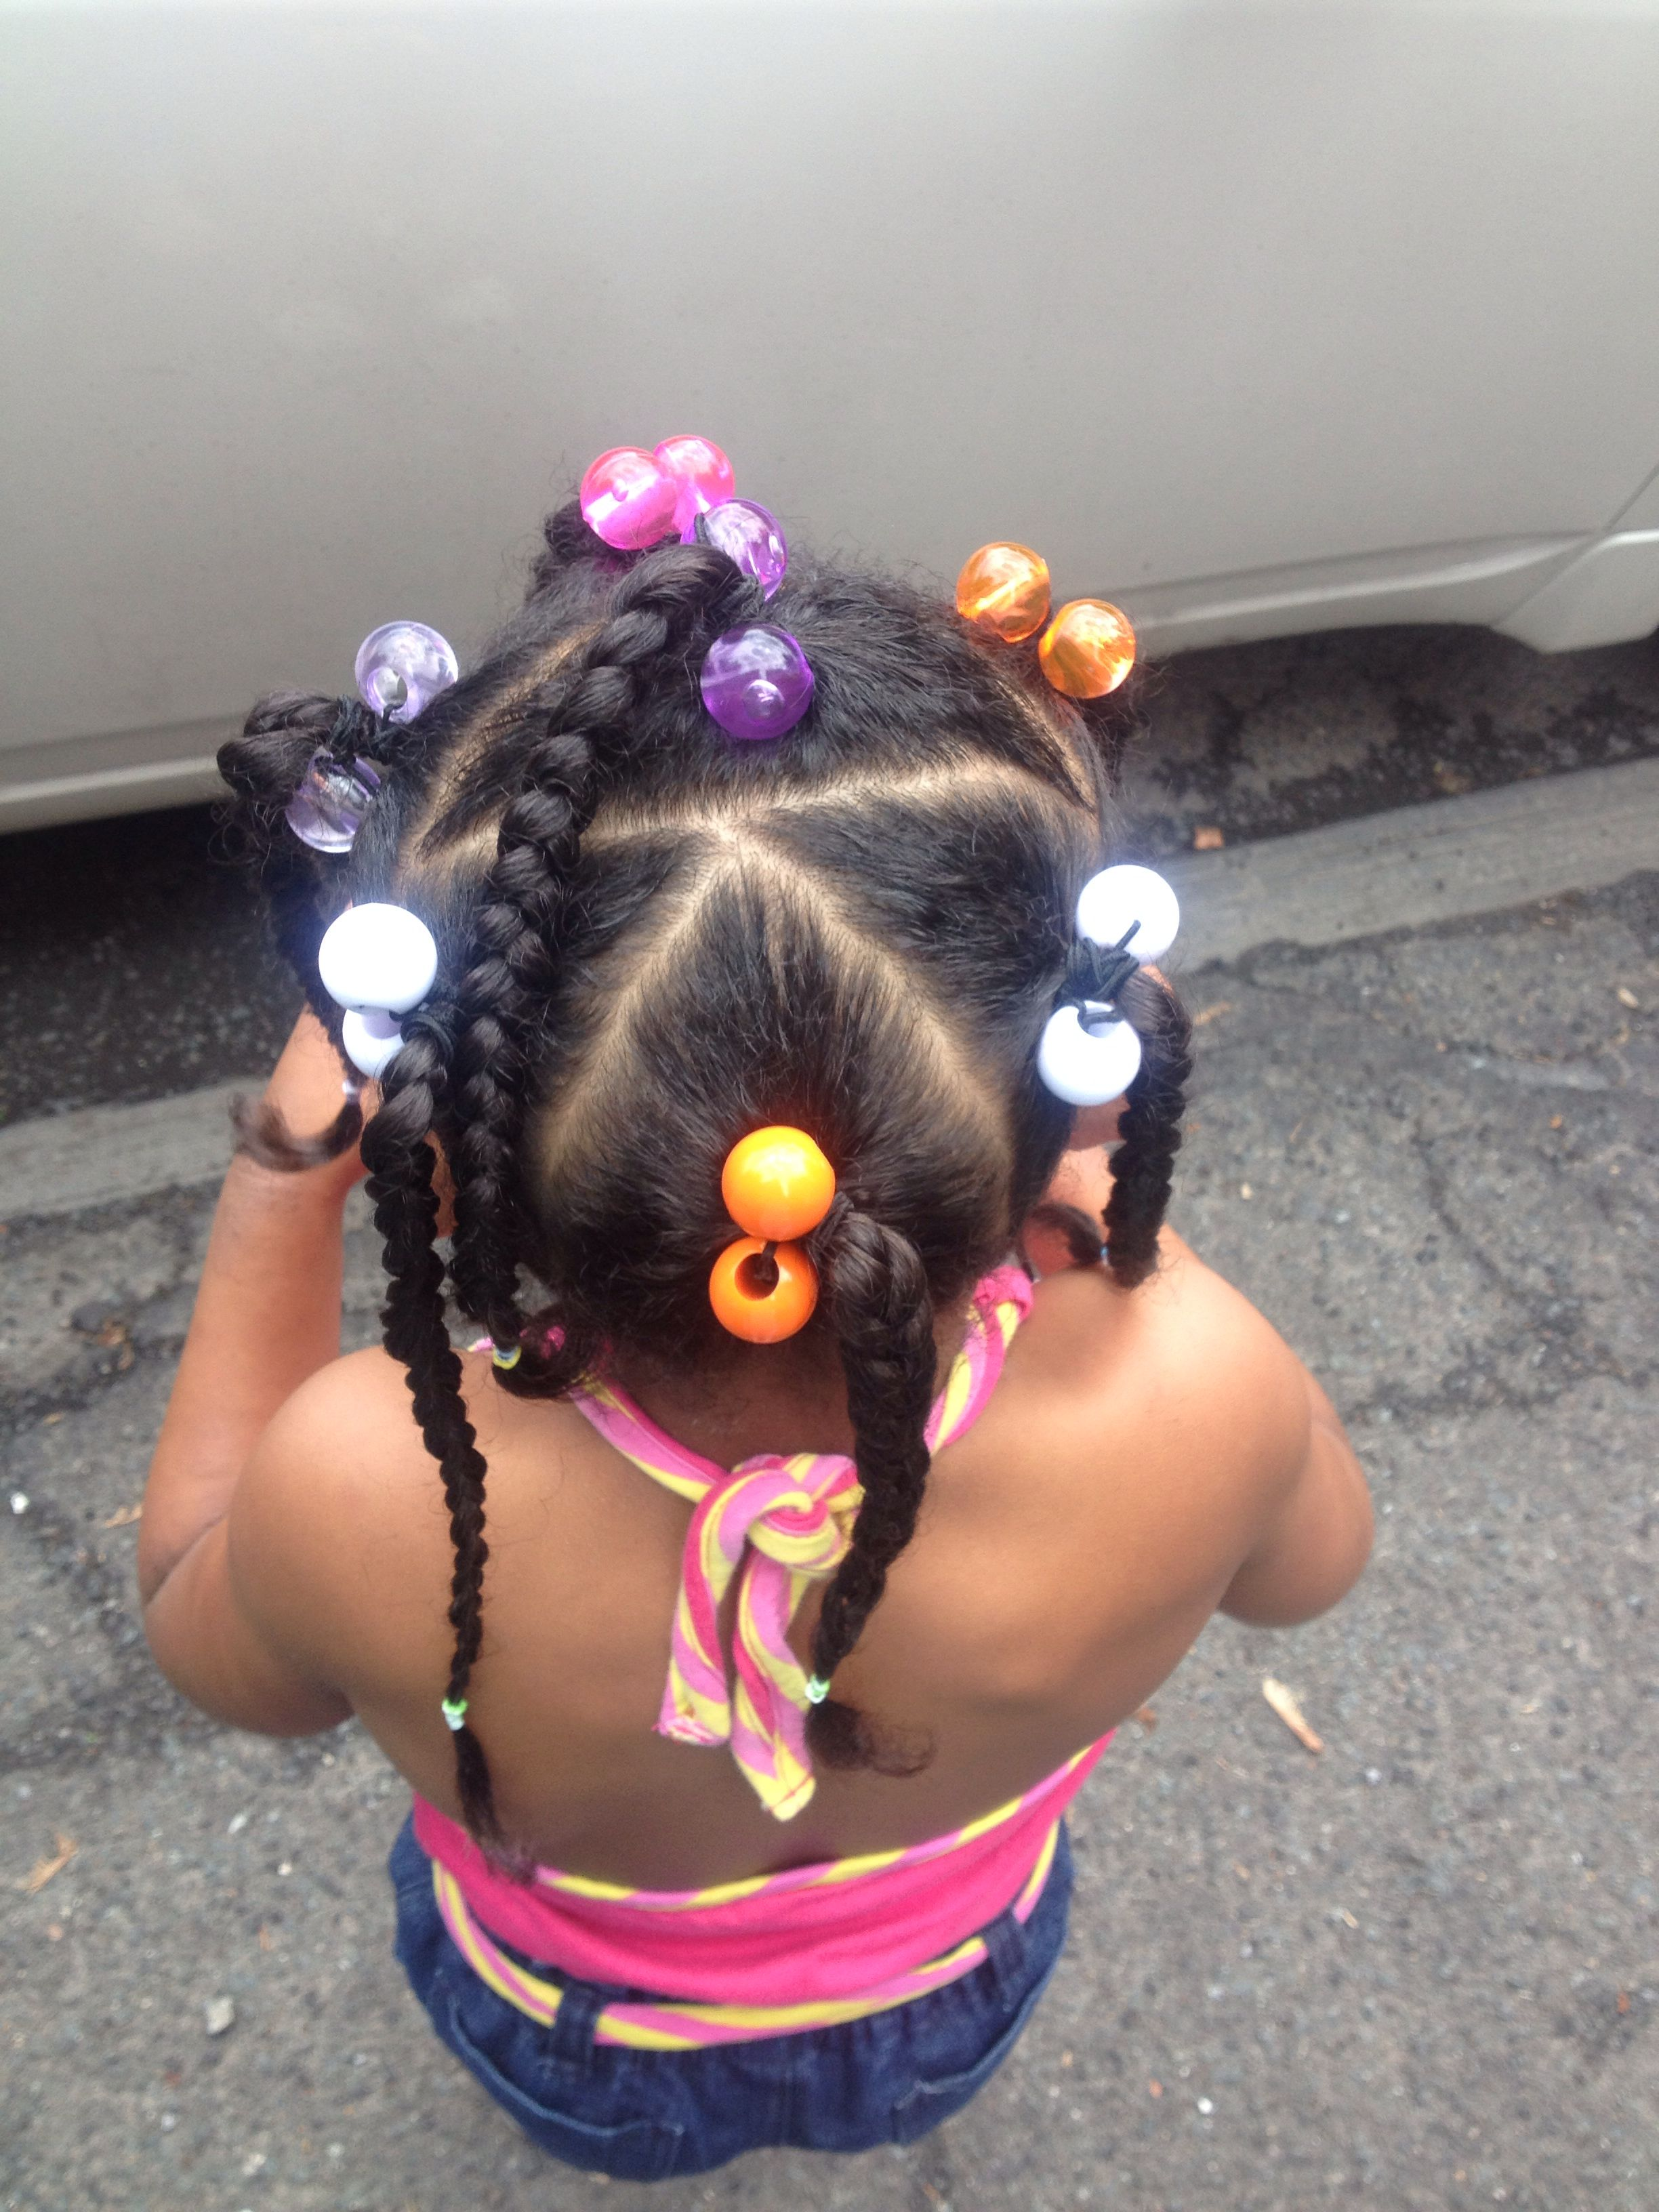 Mixed Kids Hairstyle Mixed Kids Hairstyles Lil Girl Hairstyles Kids Hairstyles